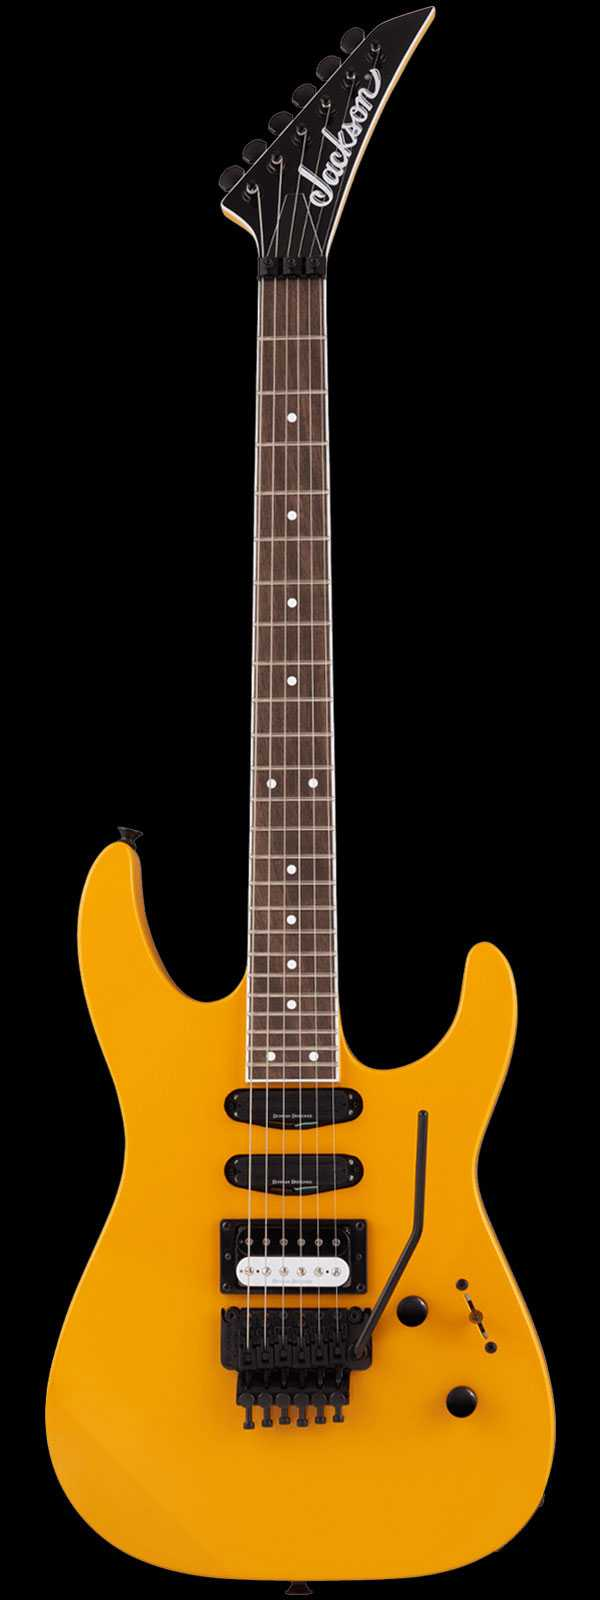 Jackson X Series Soloist SL1X Limited HSS Taxi Cab Yellow